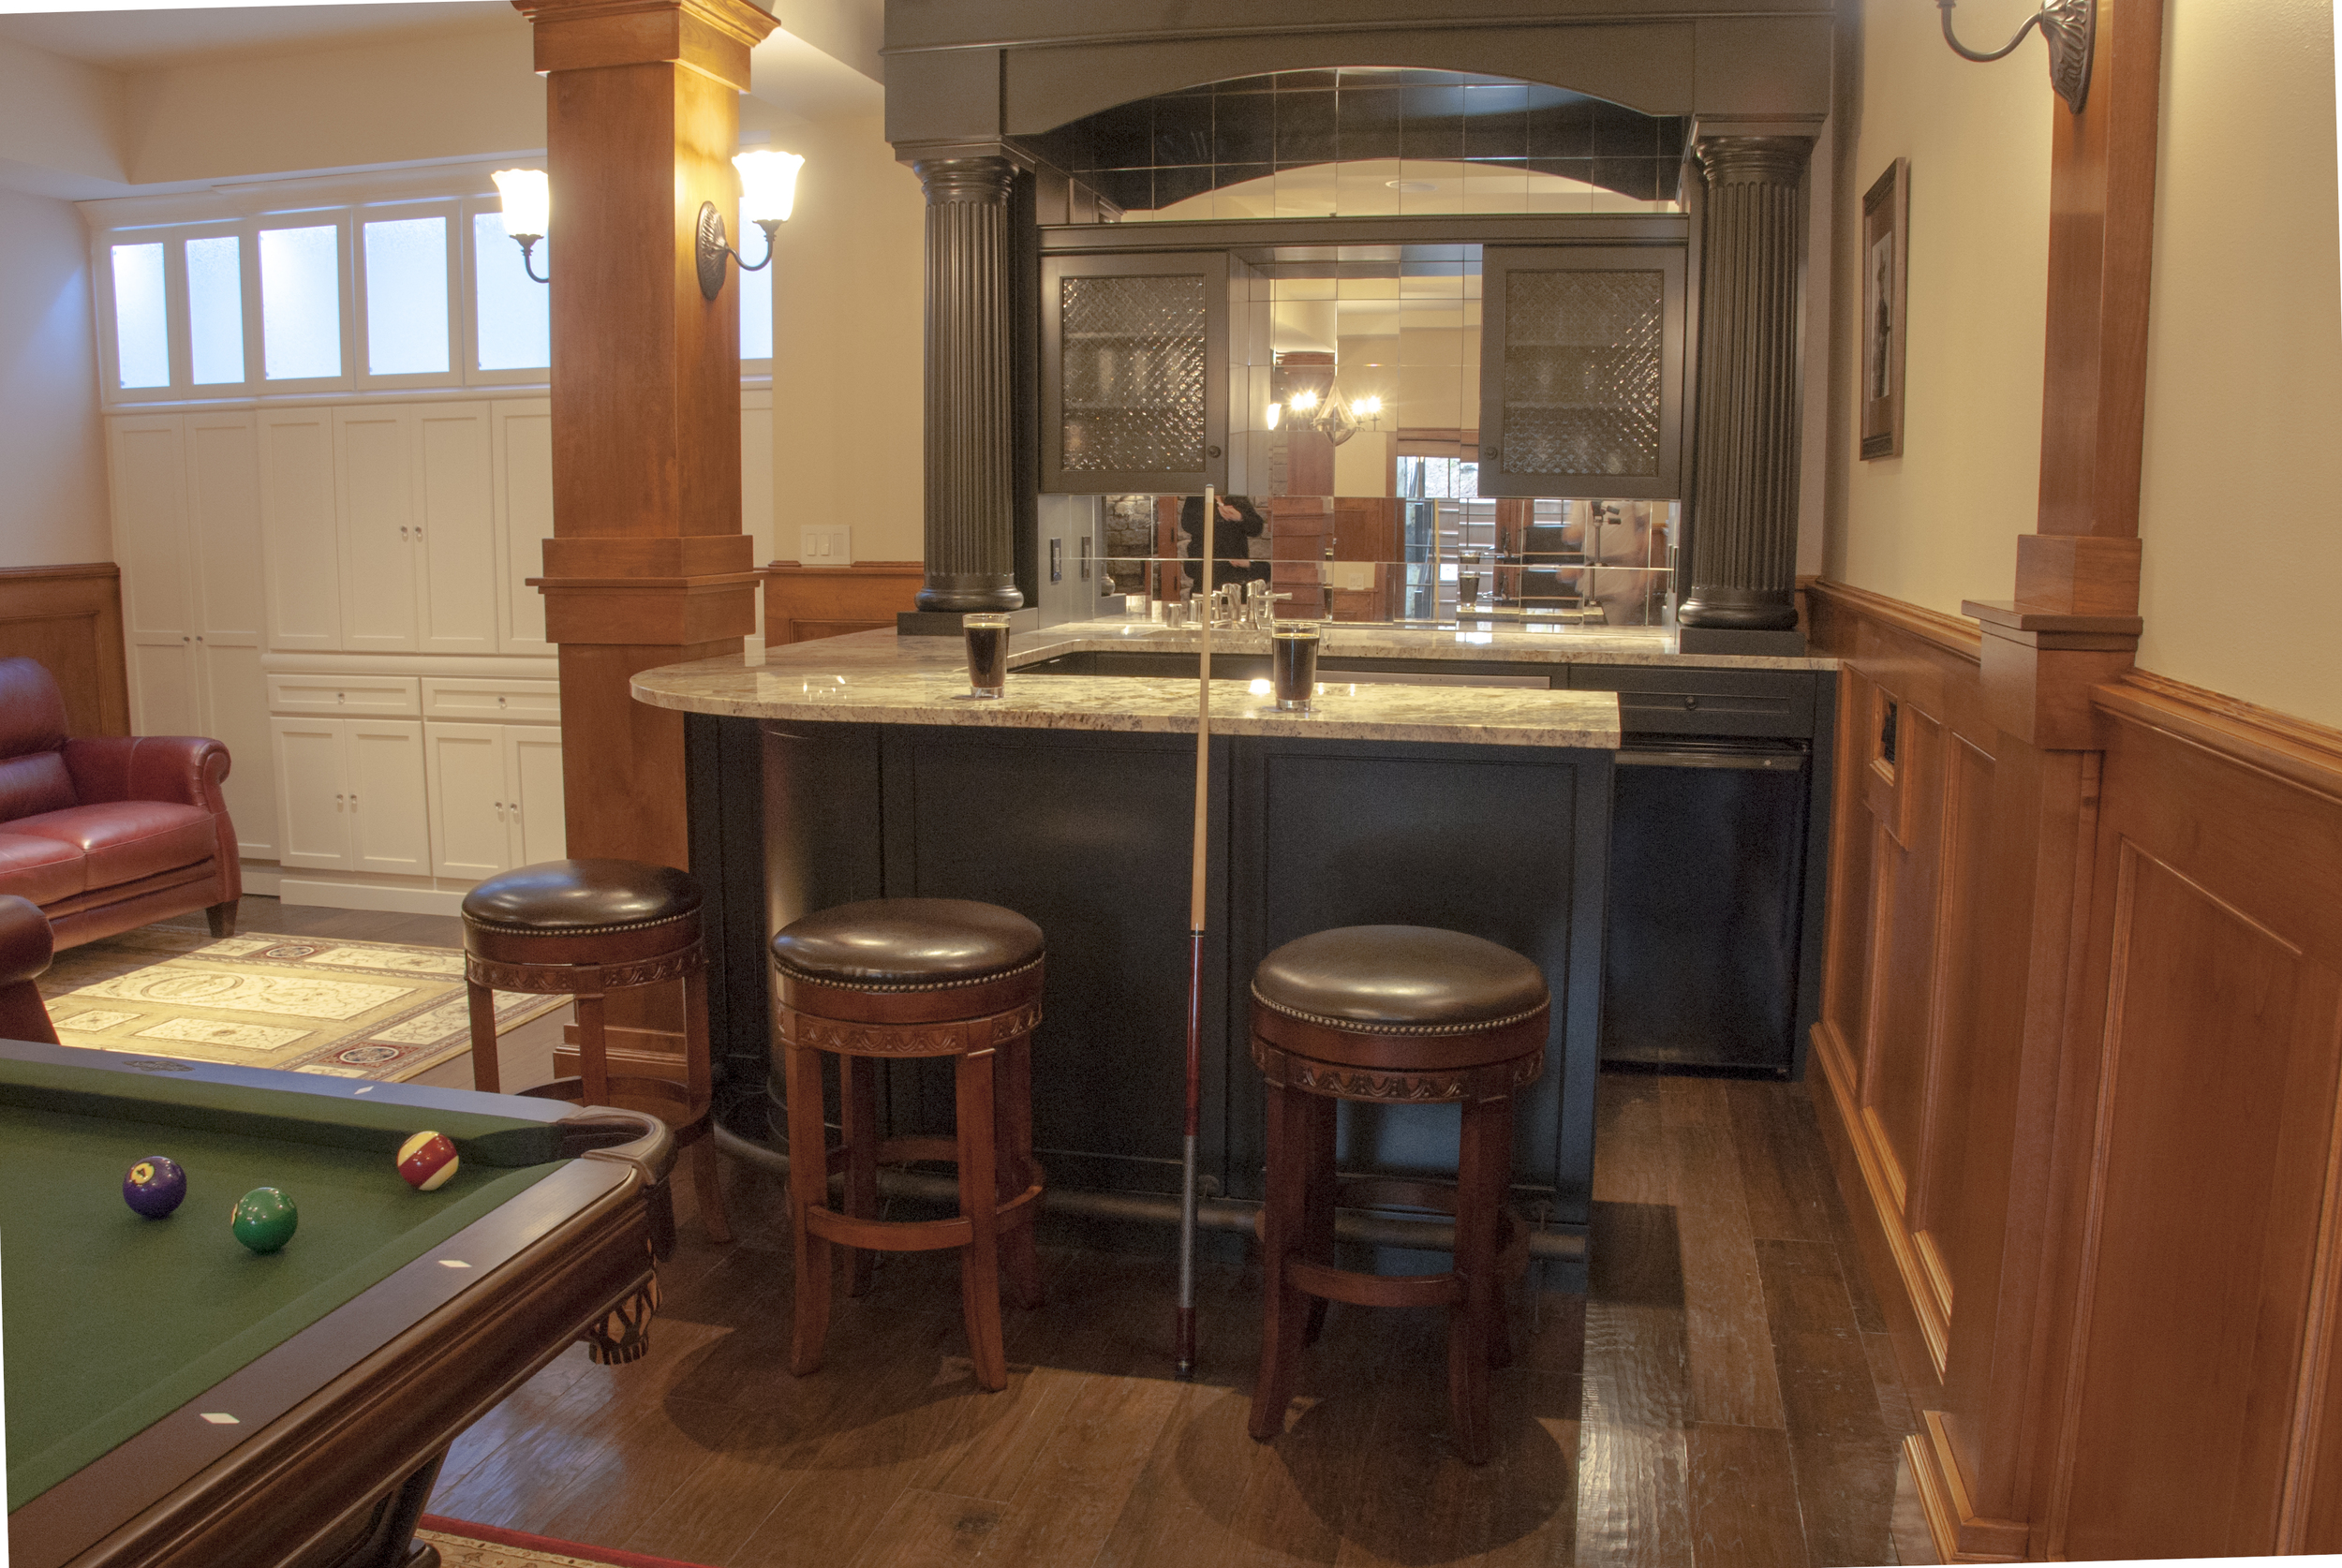 The custom bar - fully stocked of course - is another one of a kind feature which makes this game room into a pub room.